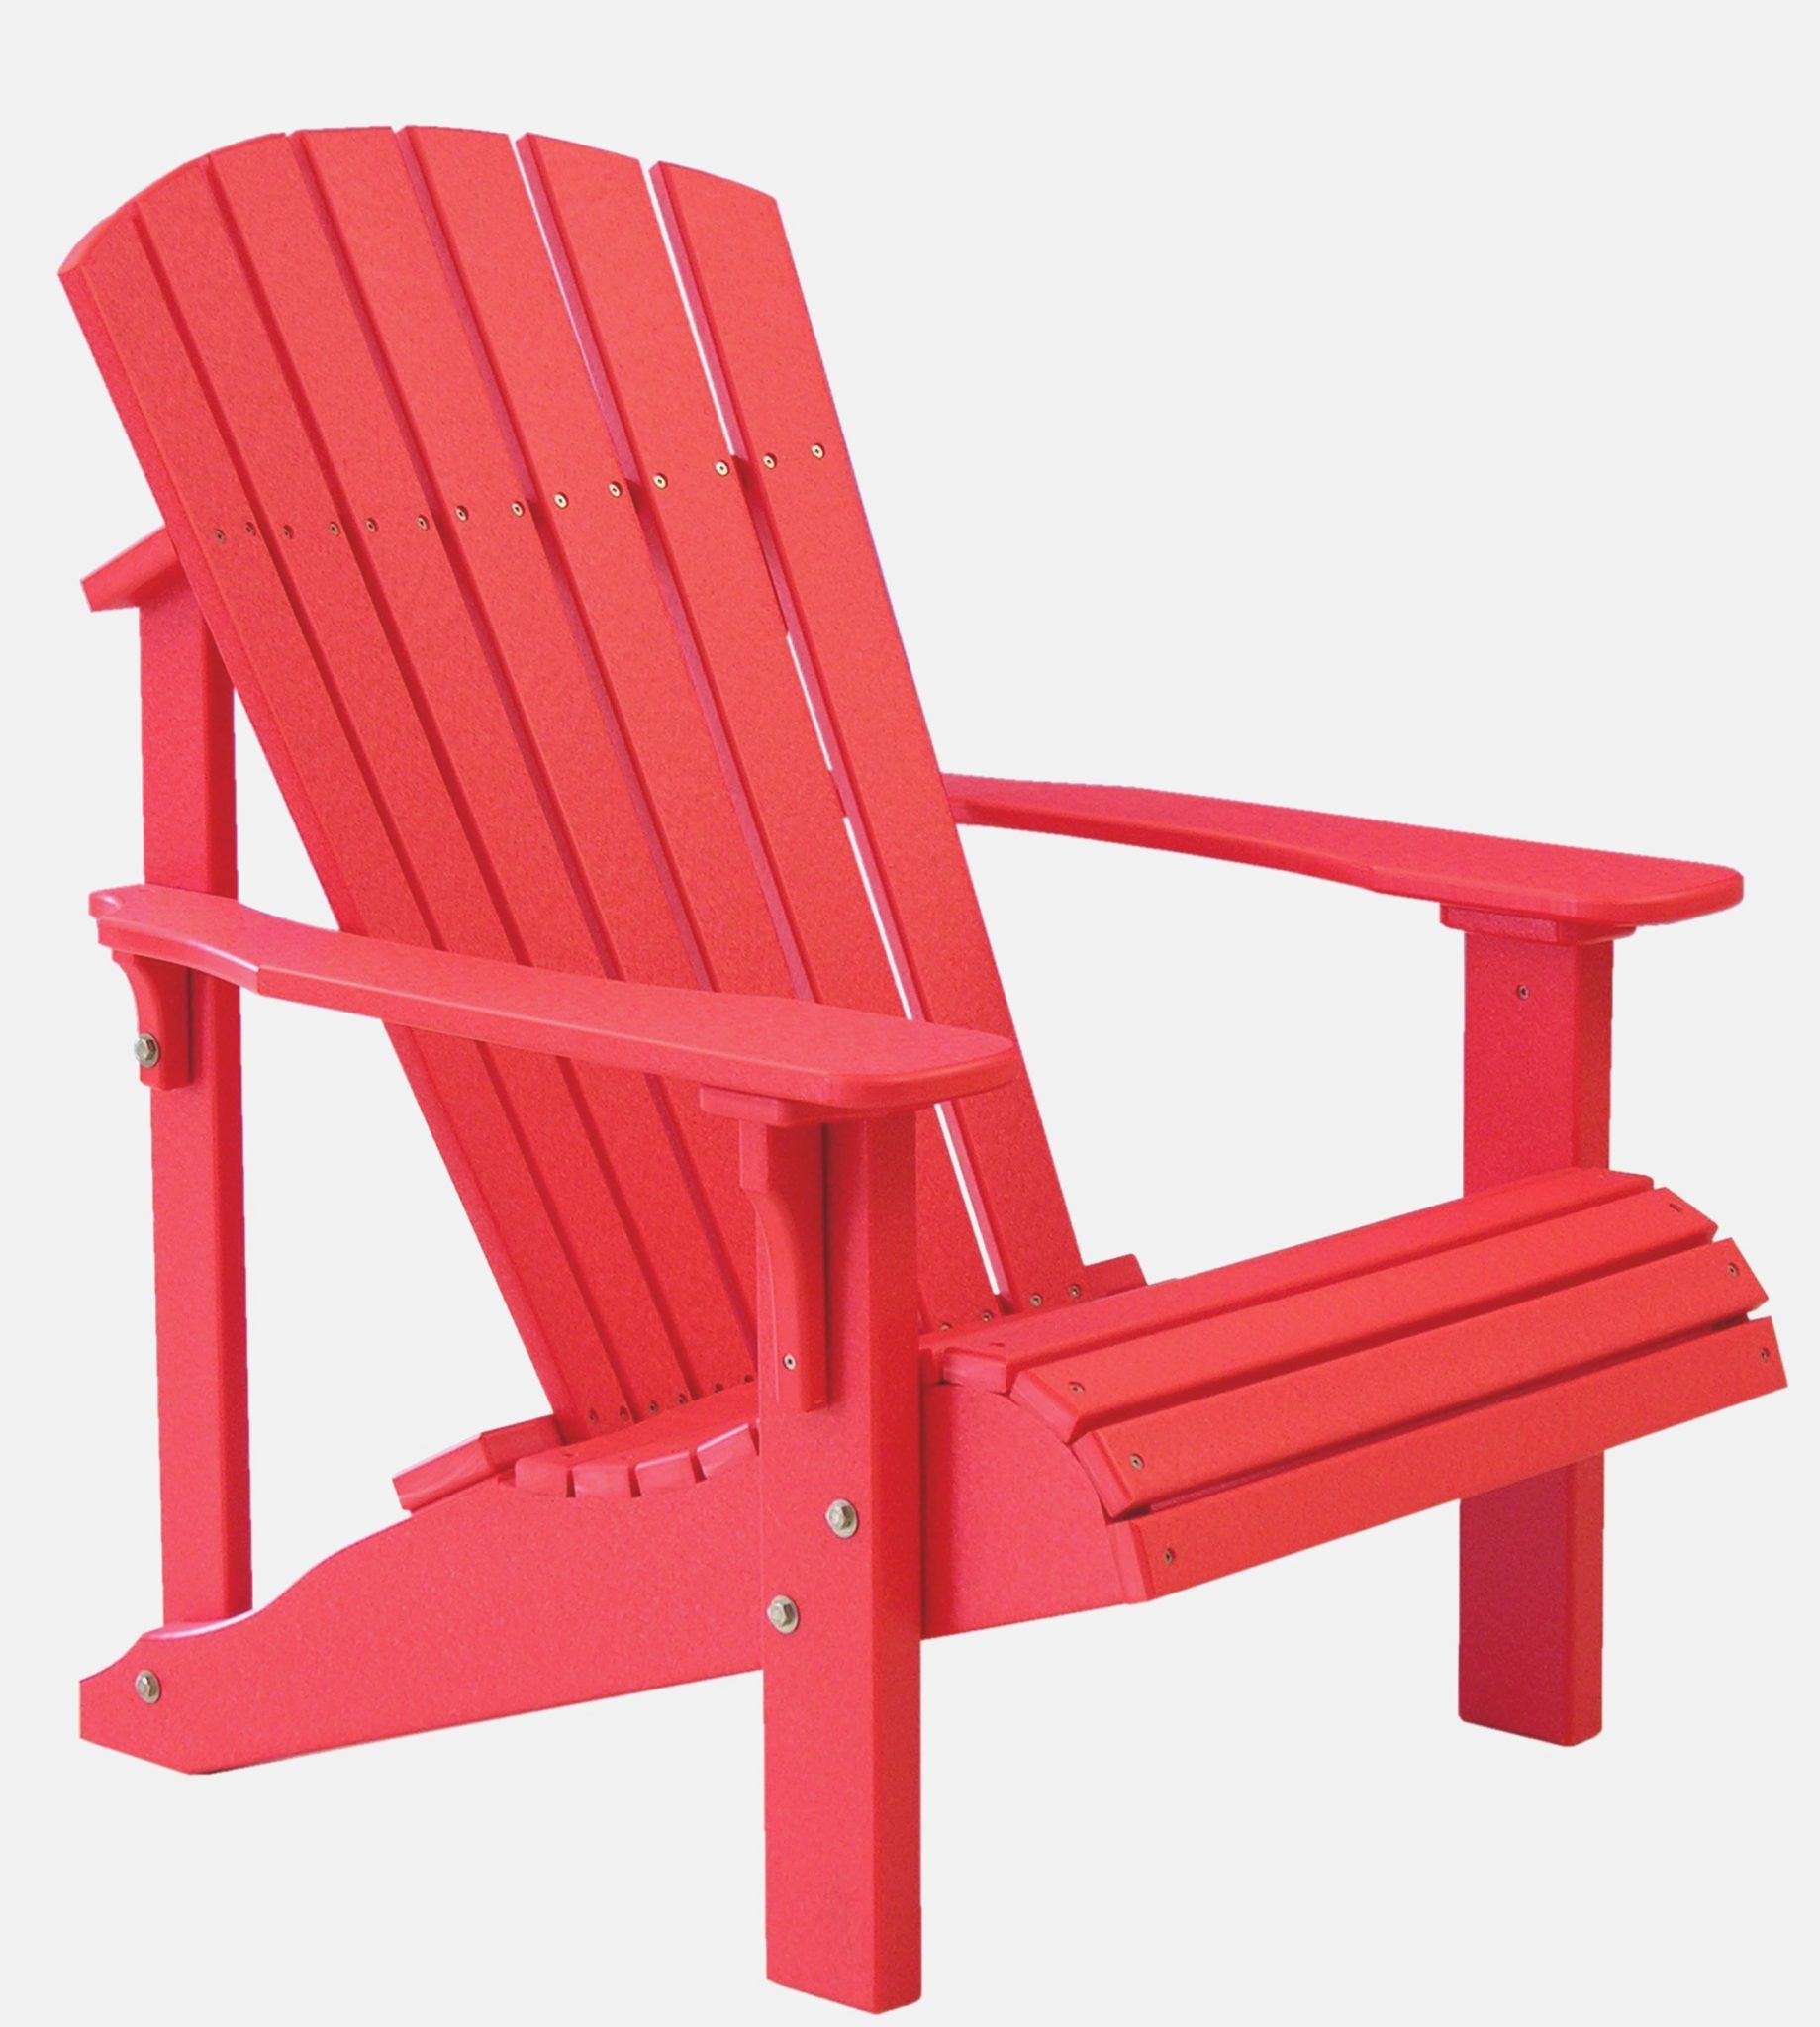 Unfinished Adirondack Chairs - cheap unfinished adirondack chairs how to finish unfinished adirondack chairs  sc 1 st  Pinterest & Unfinished Adirondack Chairs - cheap unfinished adirondack chairs ...